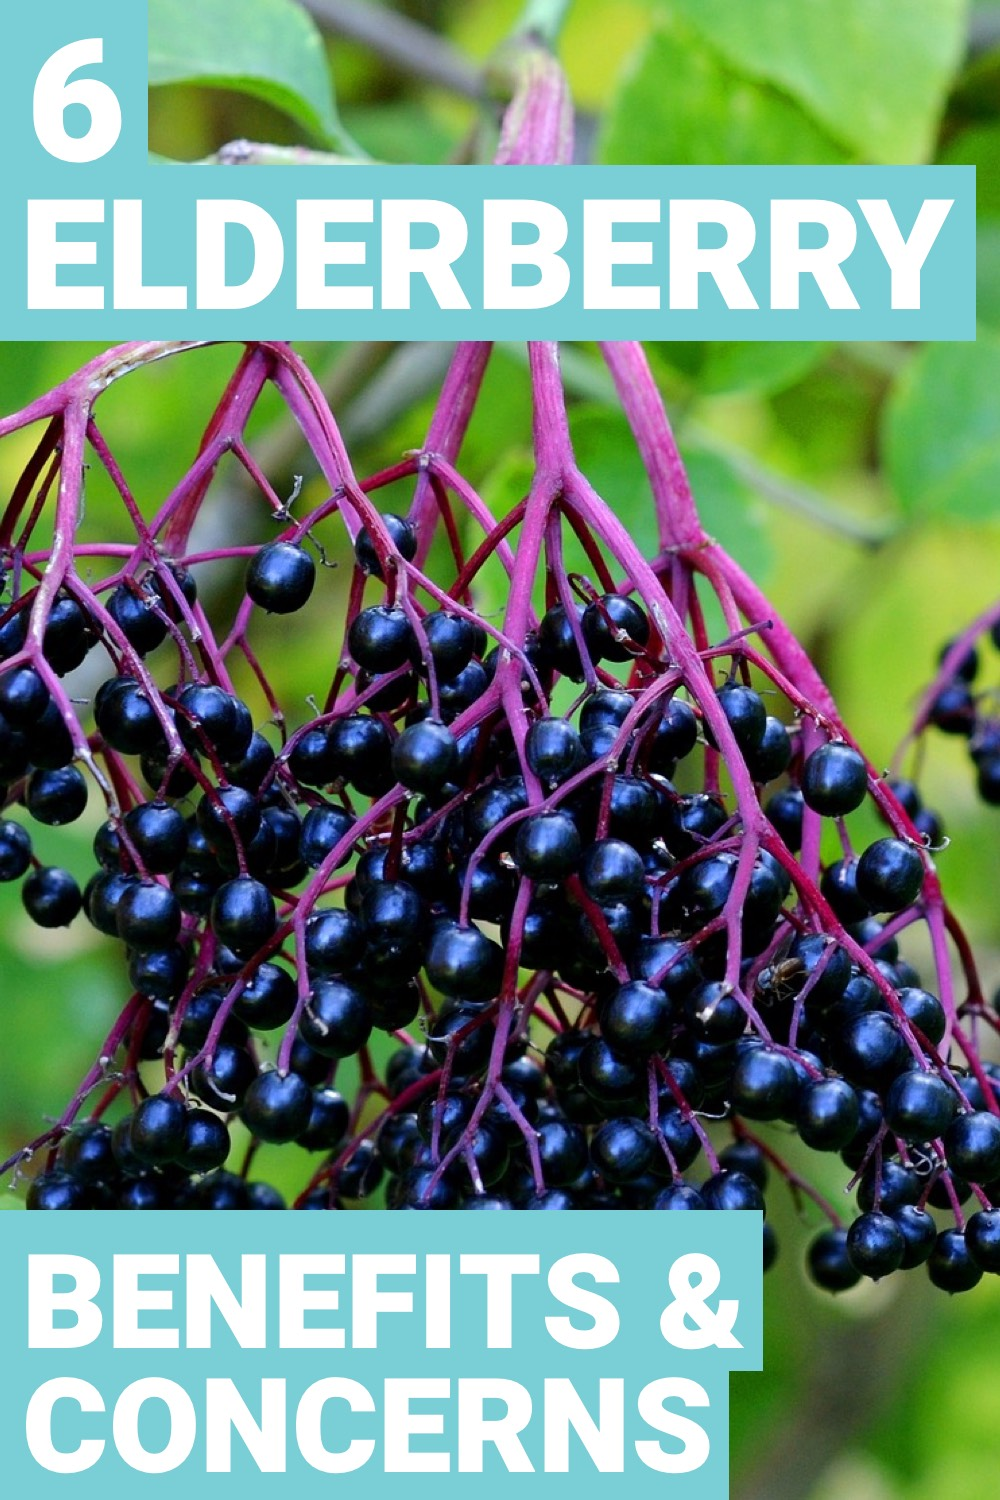 Elderberries are great when it comes to making your body feel better due to sickness. Find out other elderberry benefits here.